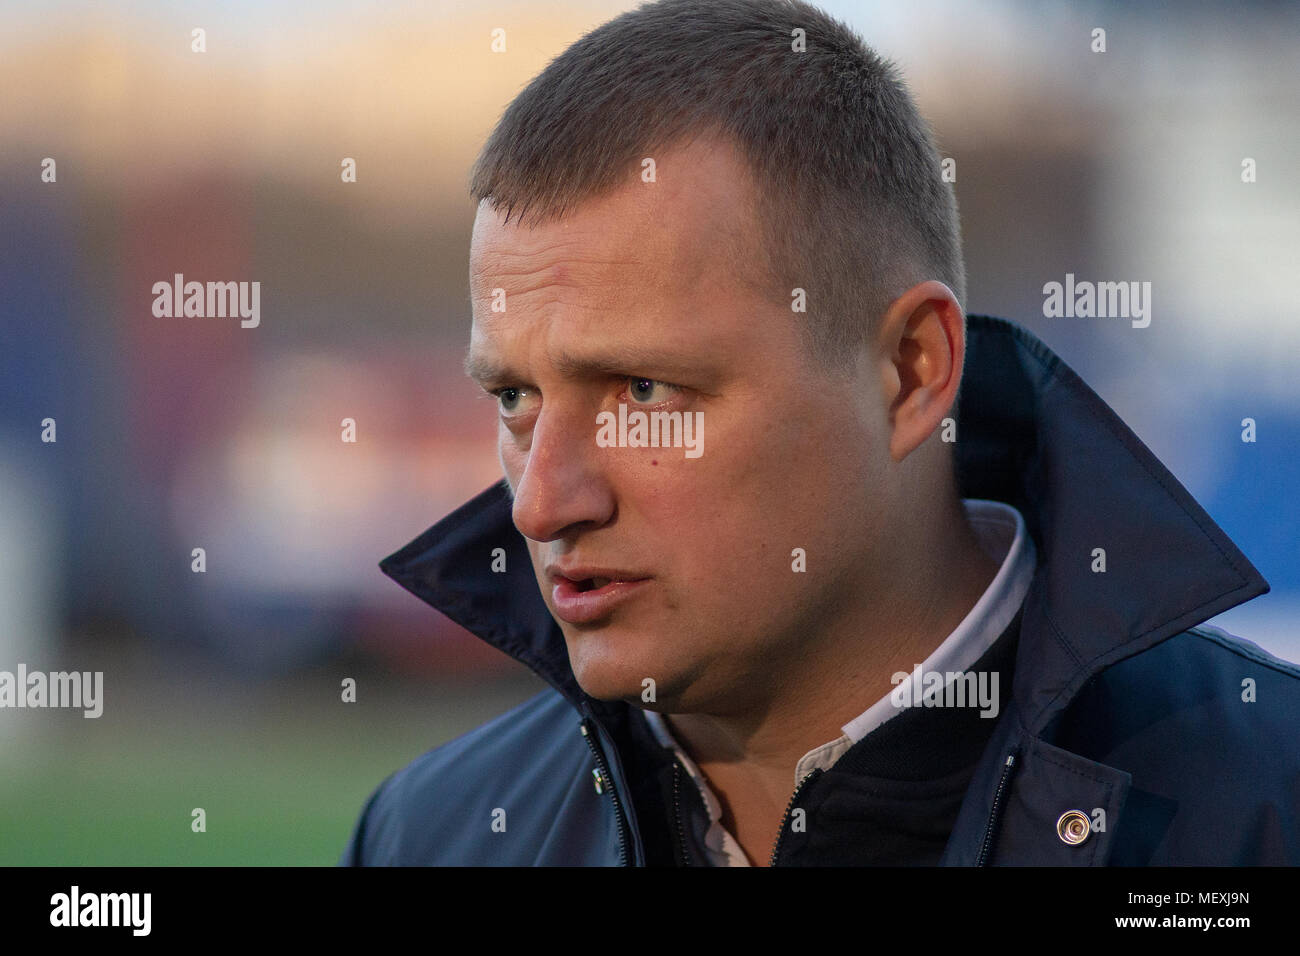 MINSK, BELARUS - APRIL 7, 2018: Vitaly Zhukovsky, head coach of FC Isloch gives an interview after the Belarusian Premier League football match between FC Dynamo Minsk and FC Isloch at the FC Minsk Stadium. - Stock Image